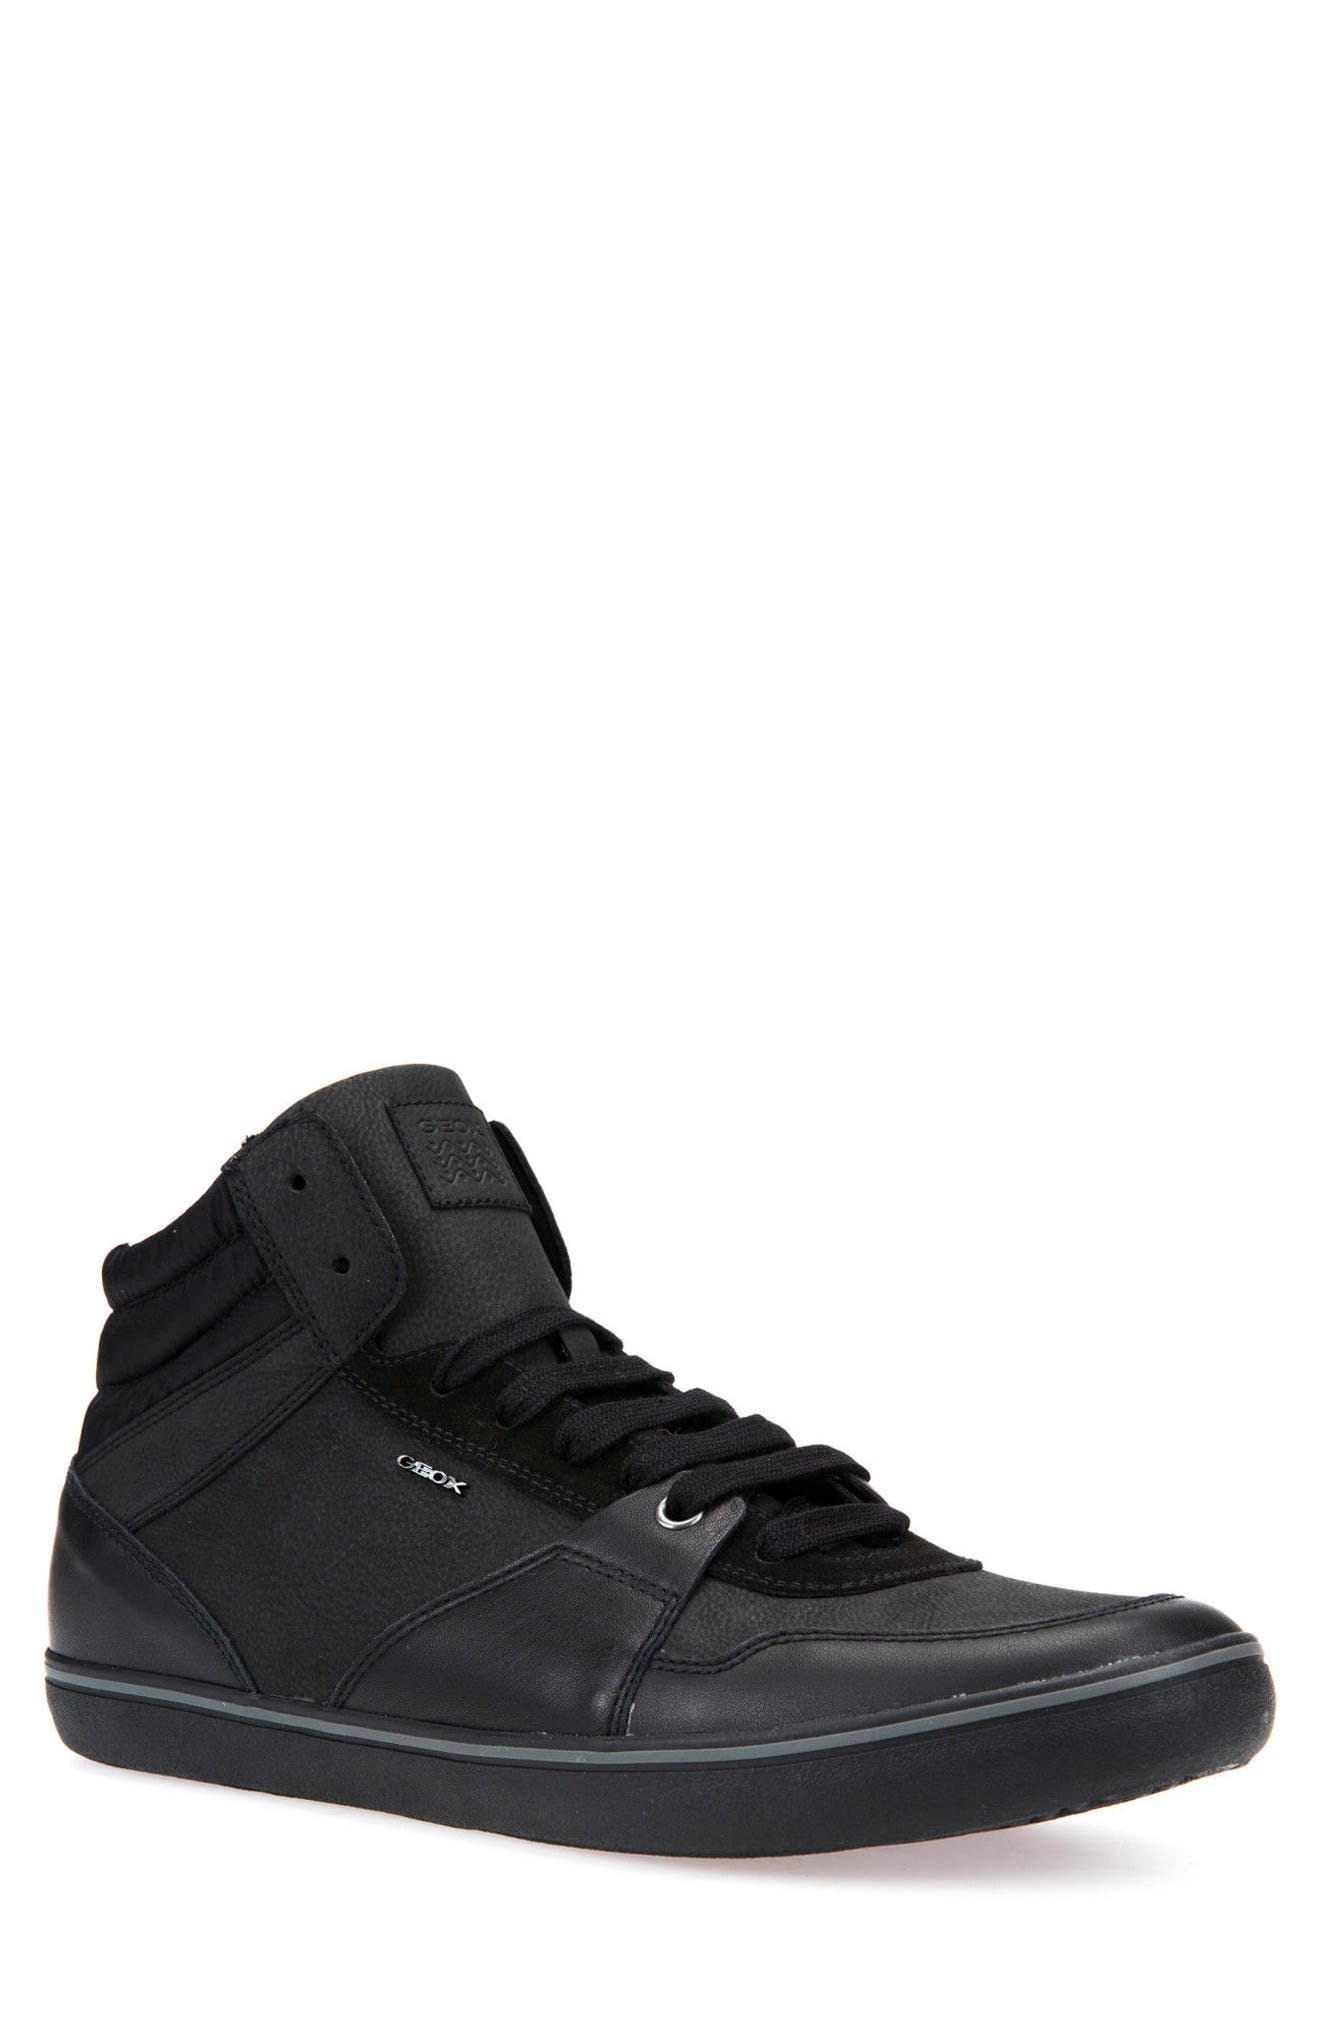 Box 31 High Top Sneaker,                             Main thumbnail 1, color,